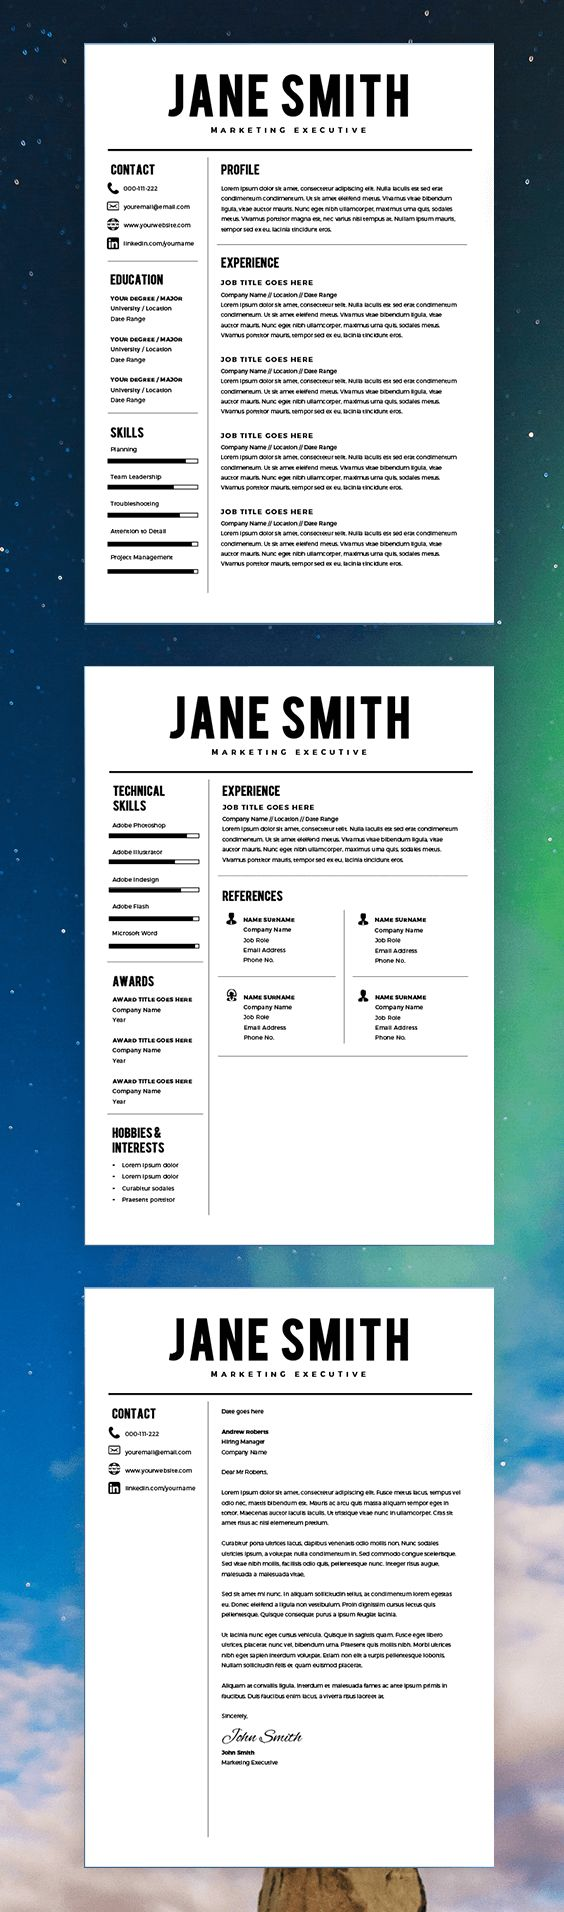 1238 Best Creative Resume, Business Cards, Social Media, Marketing